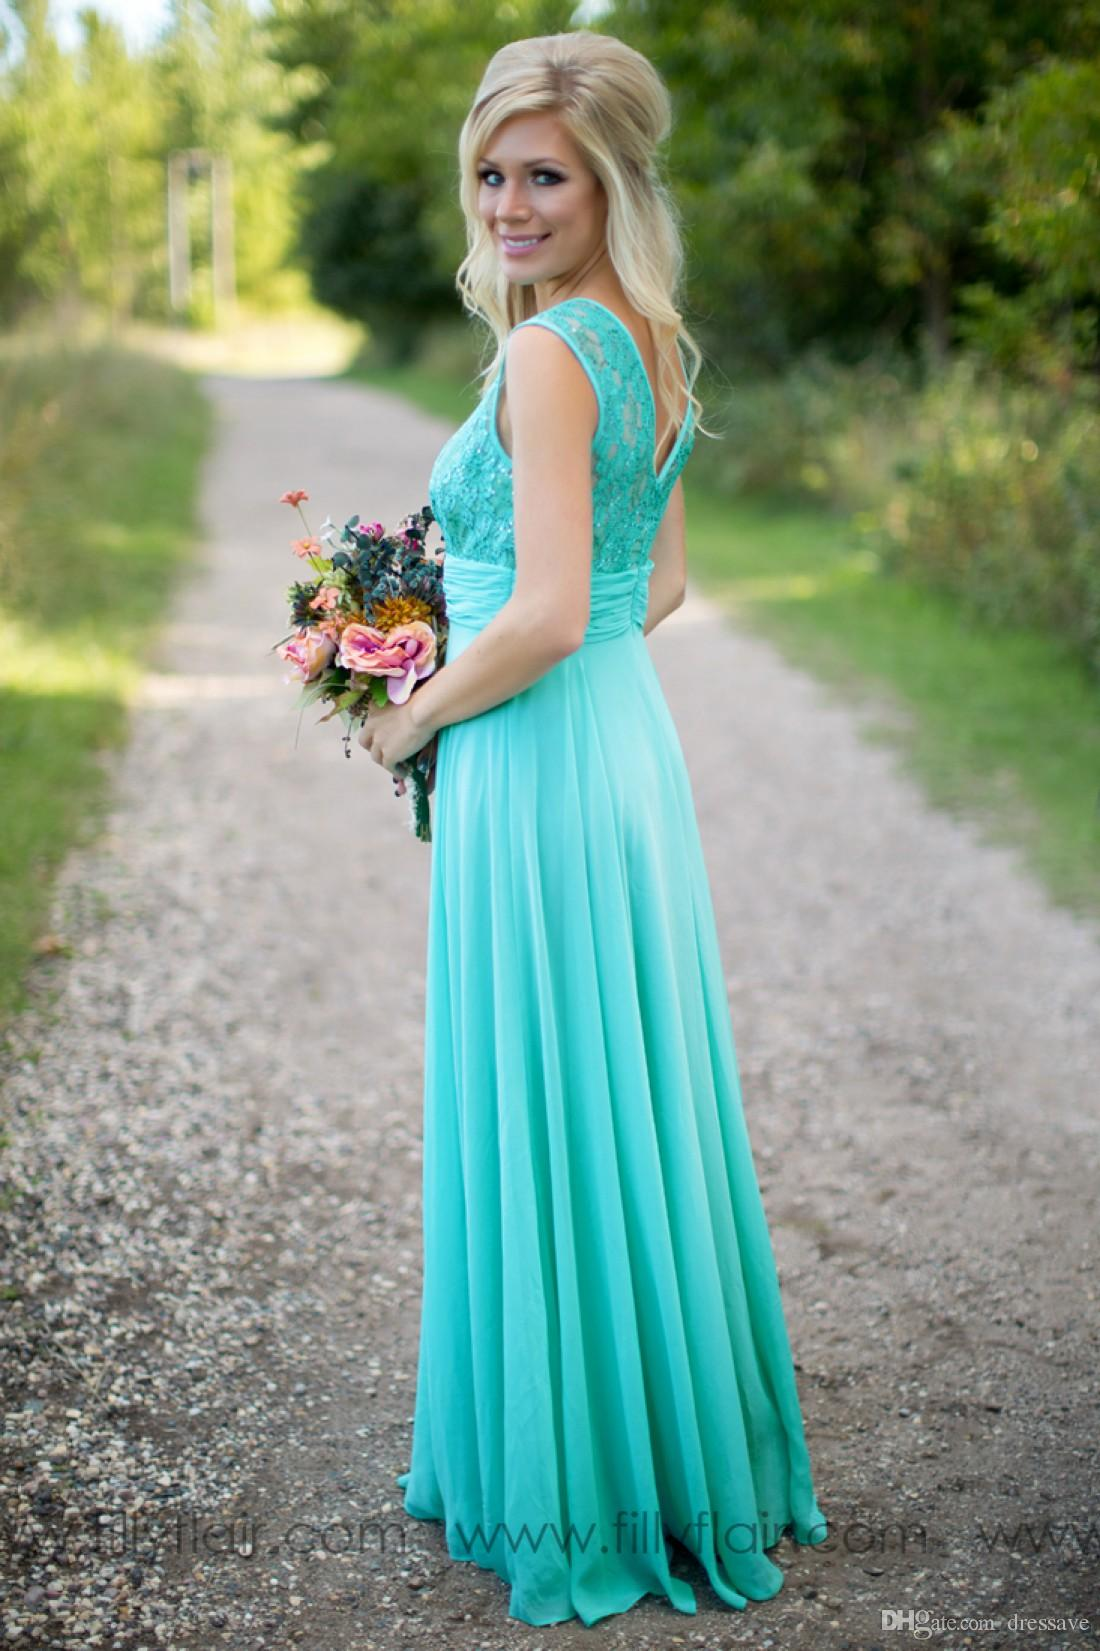 2019 Turquoise Bridesmaid Dresses Sheer Jewel Neck Lace Top Chiffon Long Country Bridesmaids Maid of Honor Wedding Guest Dresses